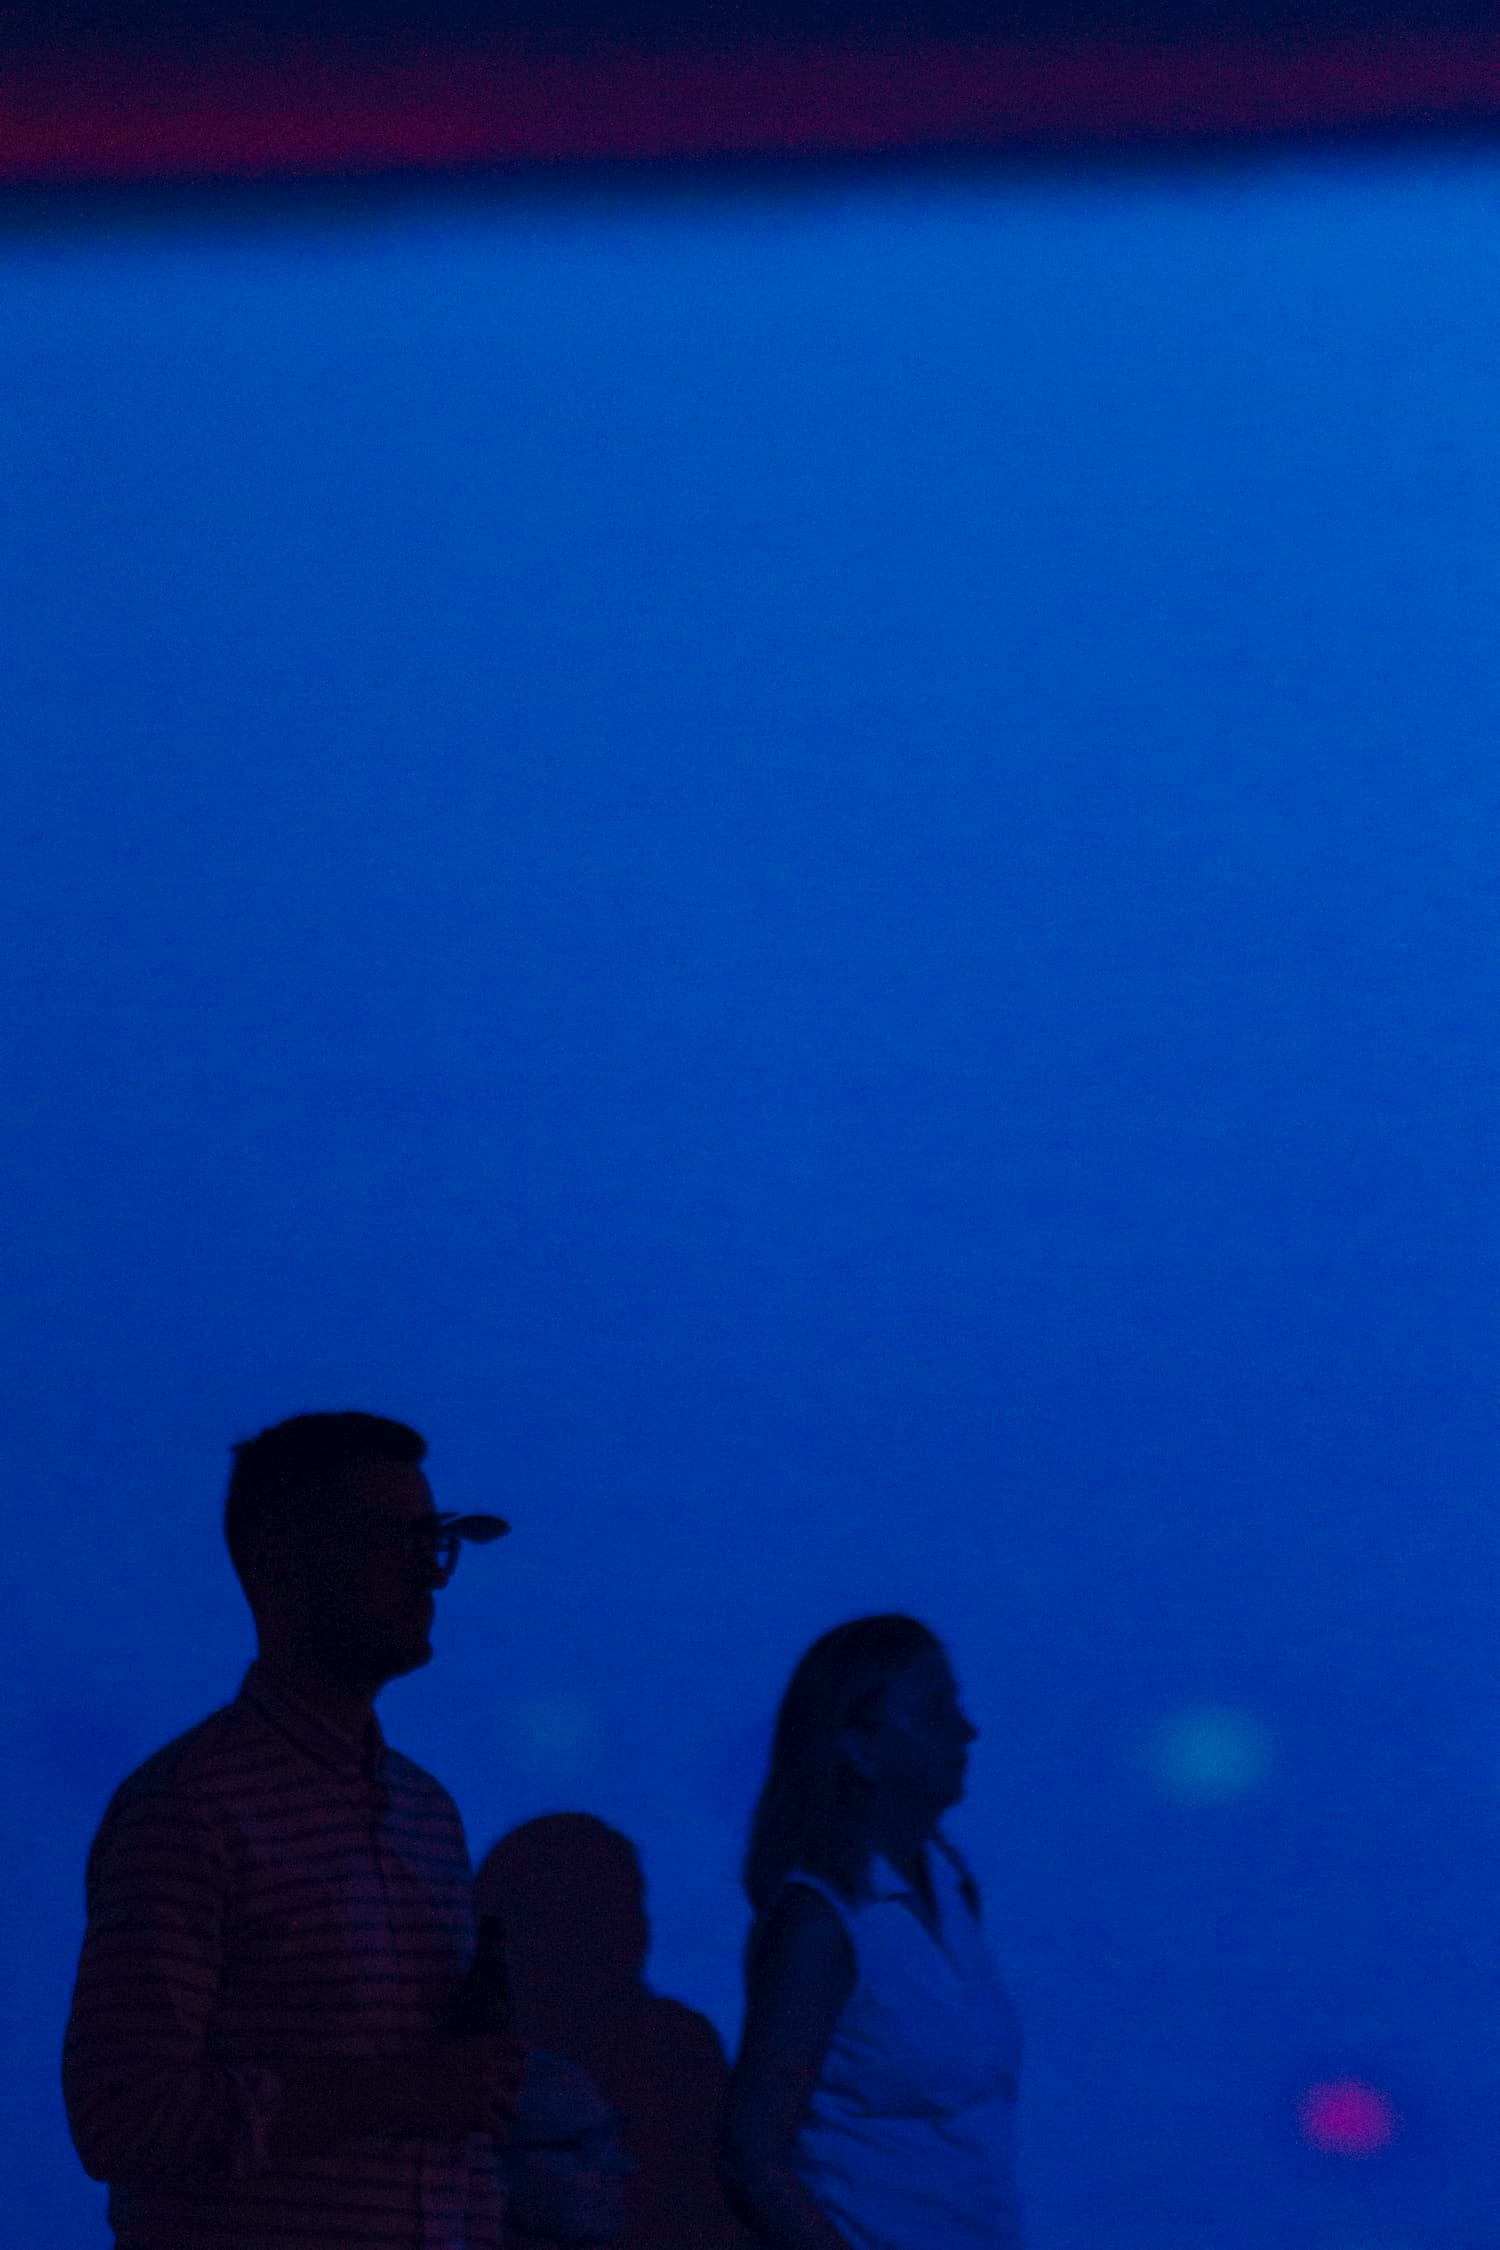 Three peoples shadows against Jack Turpin's solo show projection.